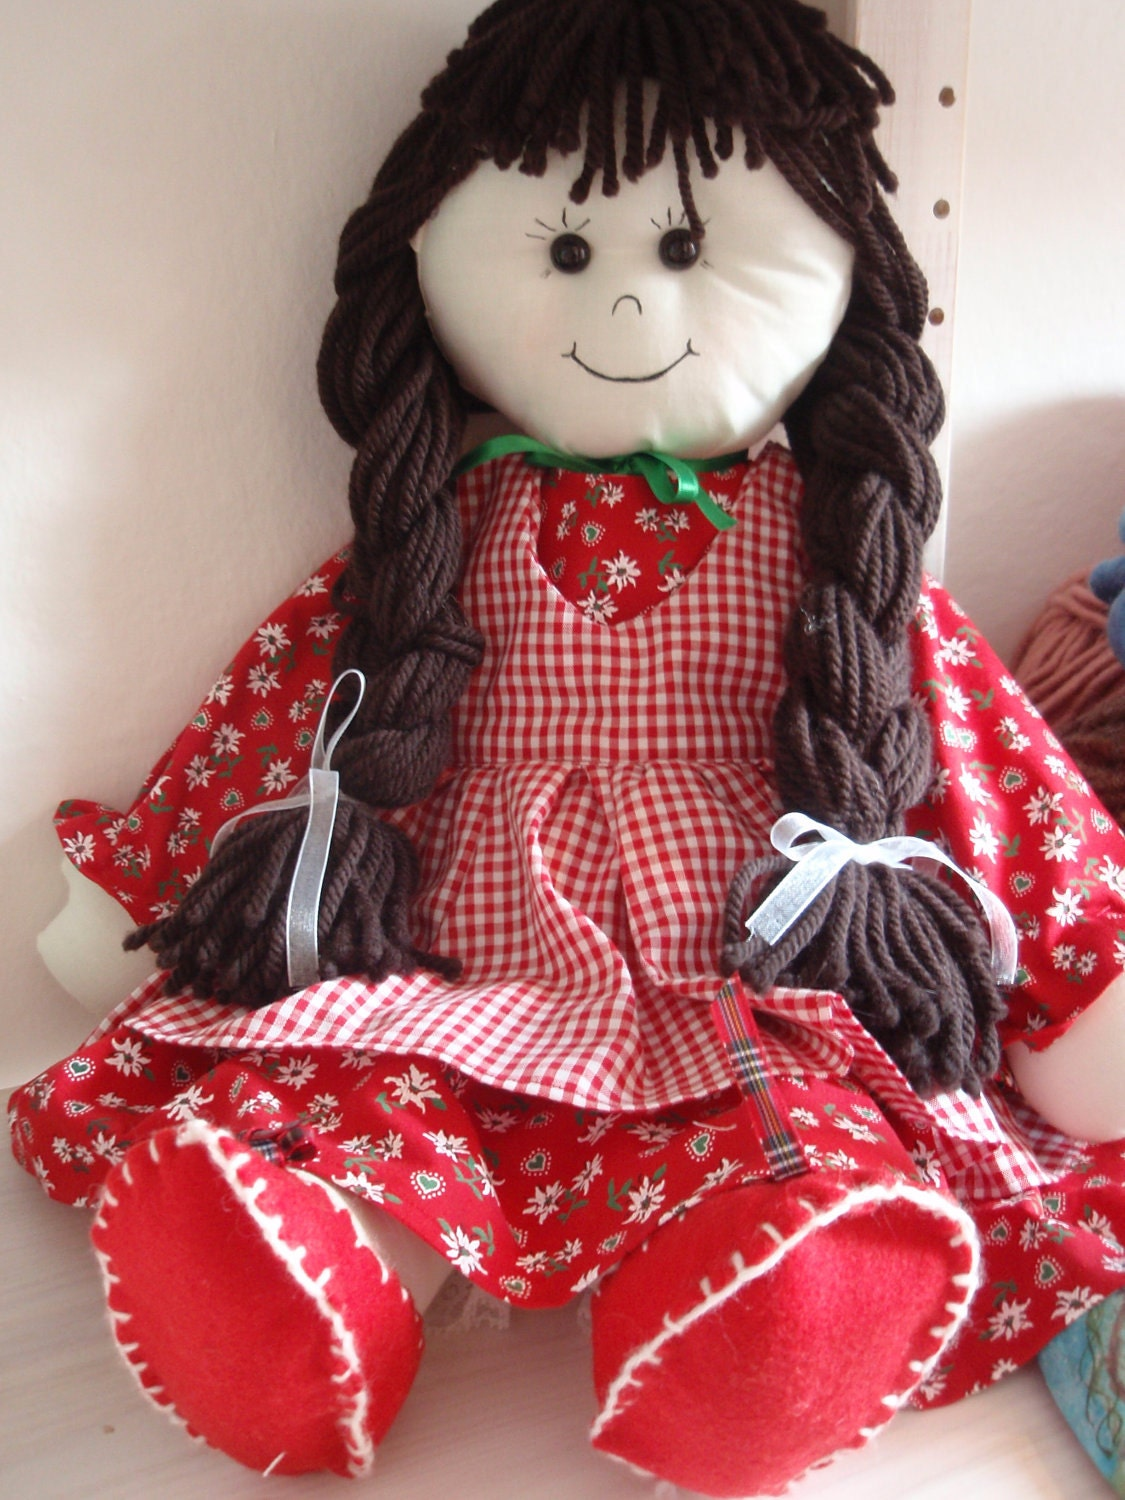 FREE KNITTING PATTERNS FOR RAG DOLLS - VERY SIMPLE FREE ...